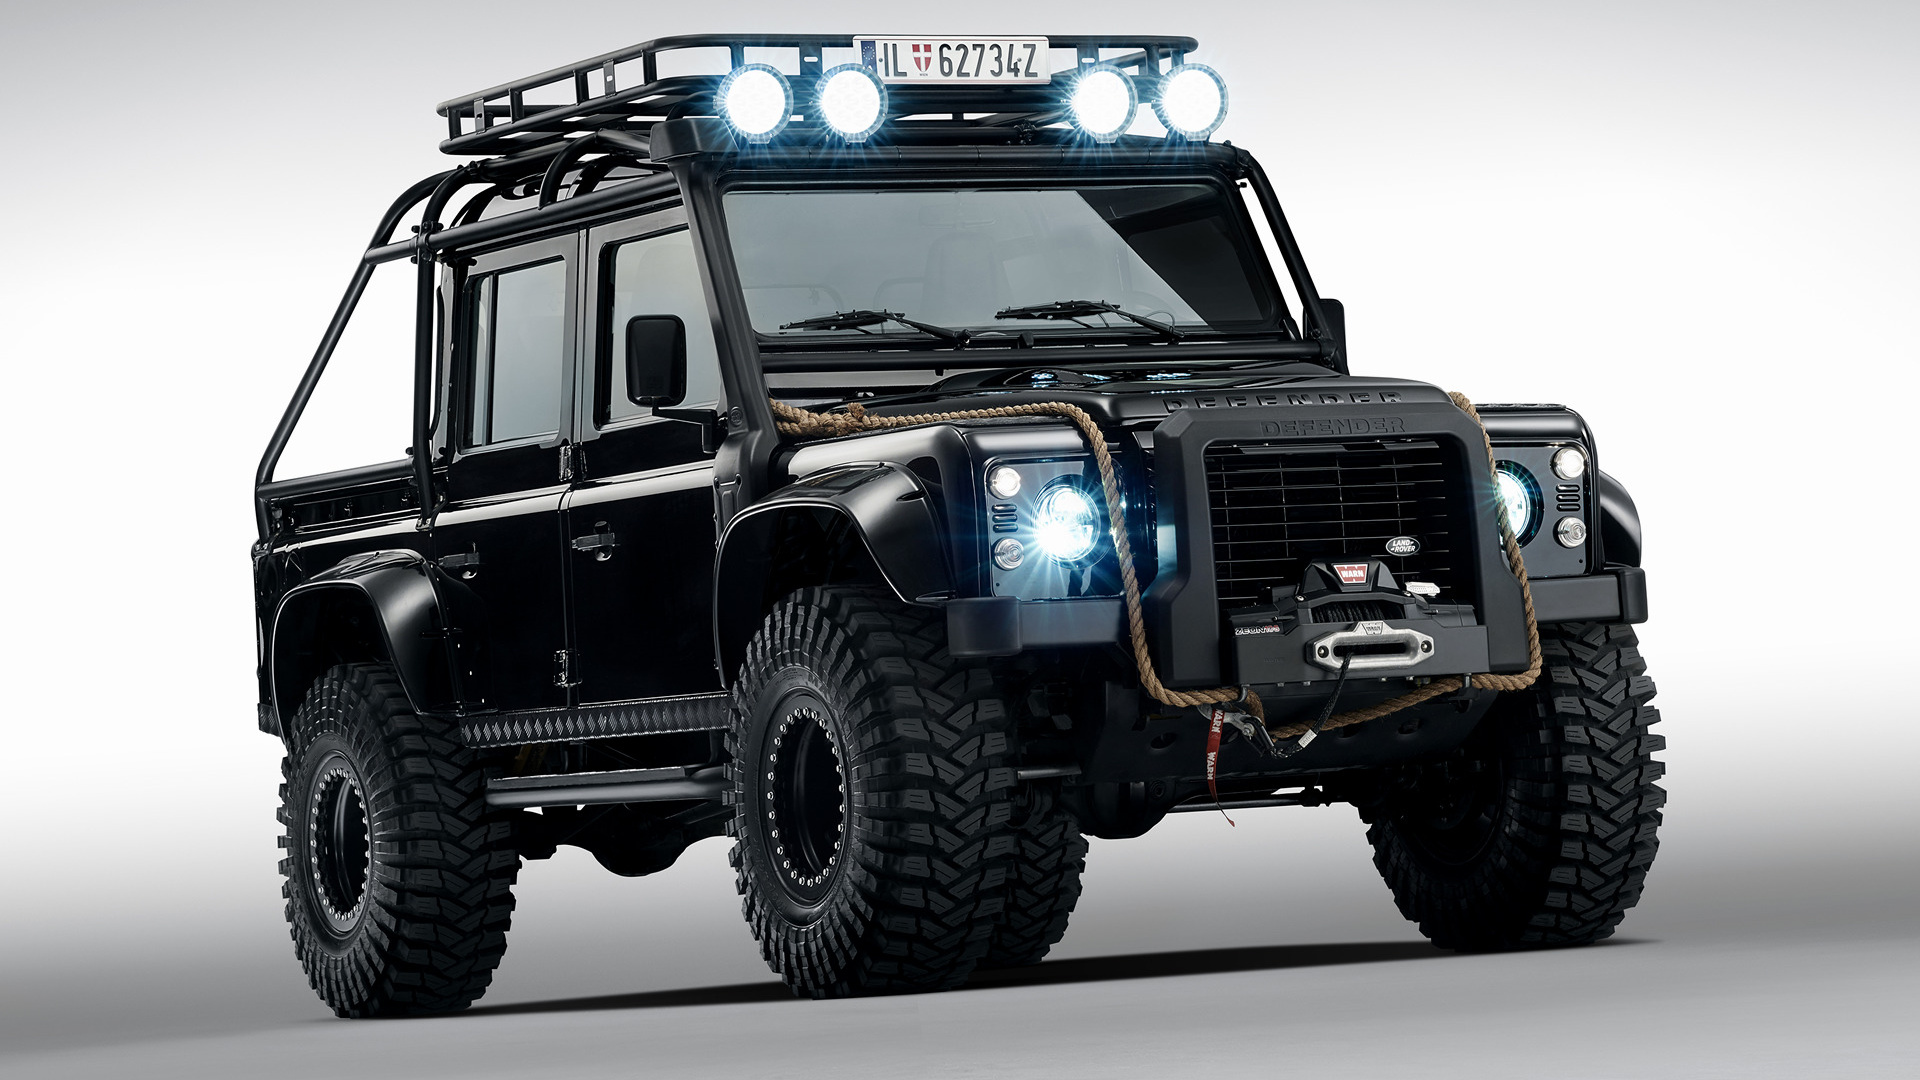 Mercedes Smart Car >> 2015 Land Rover Defender 007 Spectre - Wallpapers and HD ...